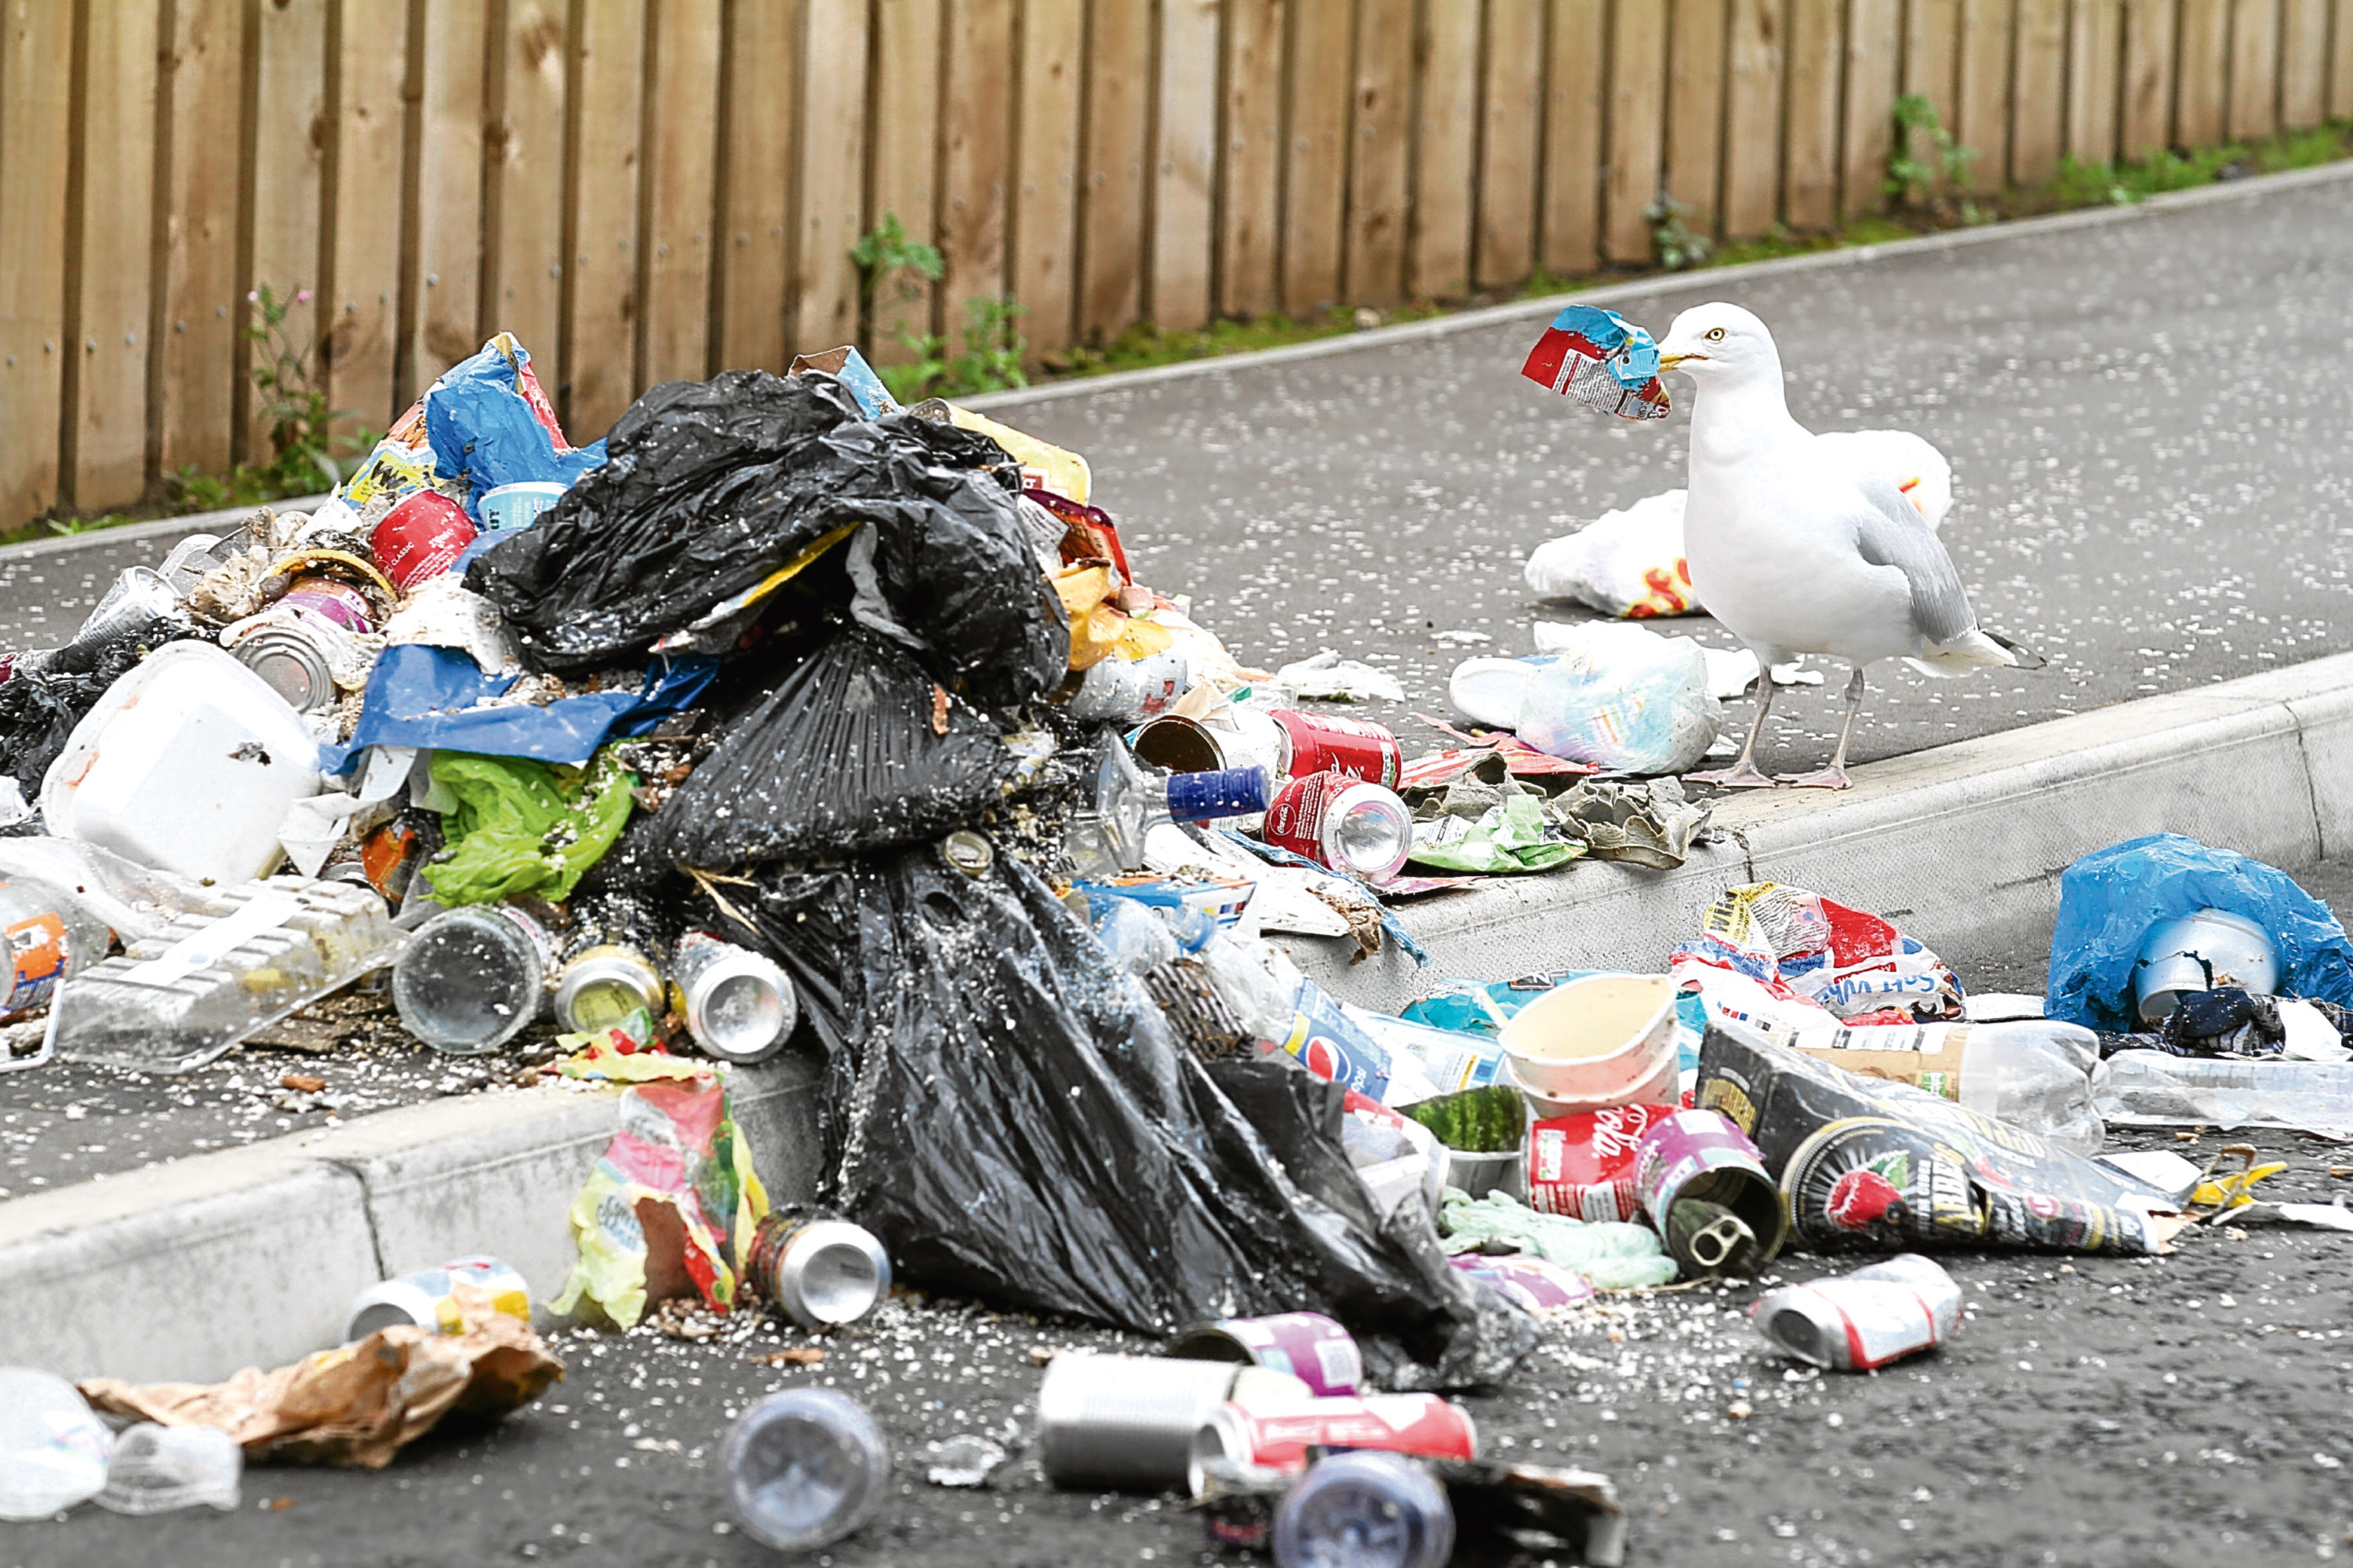 Dundee City Council hopes sights like these will be a thing of the past under its new strategy.